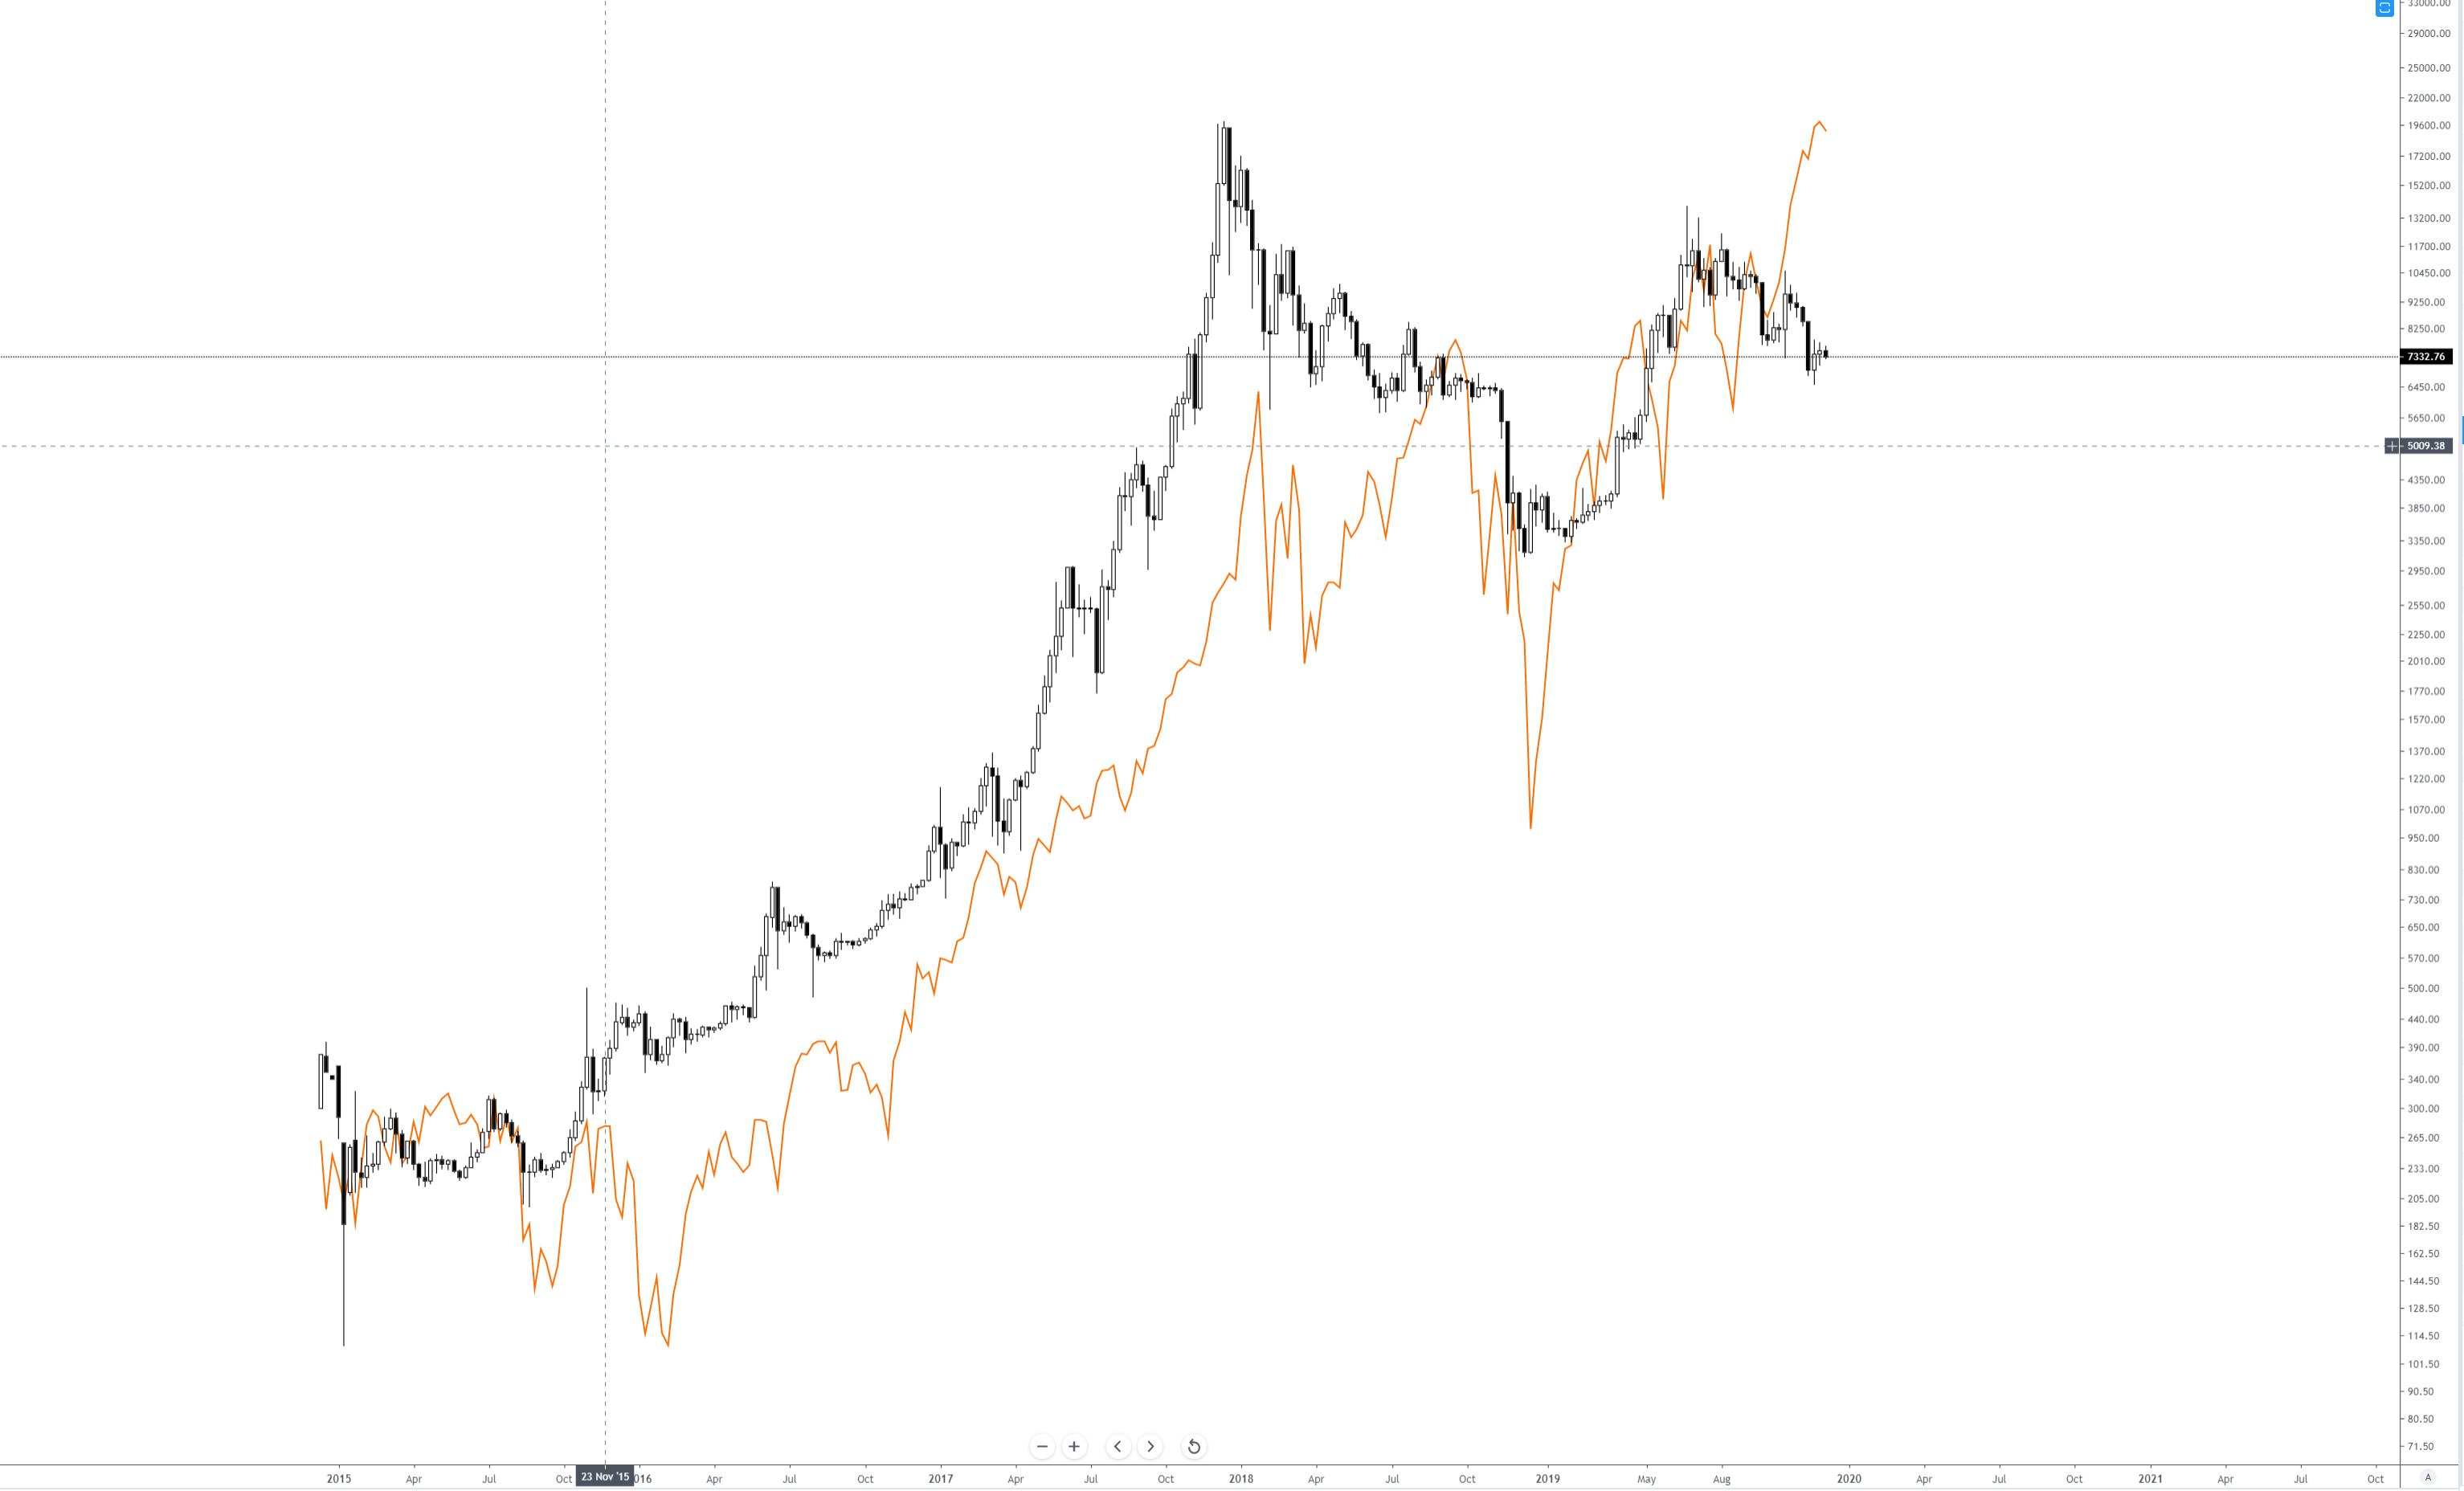 Bitcoin and S&P